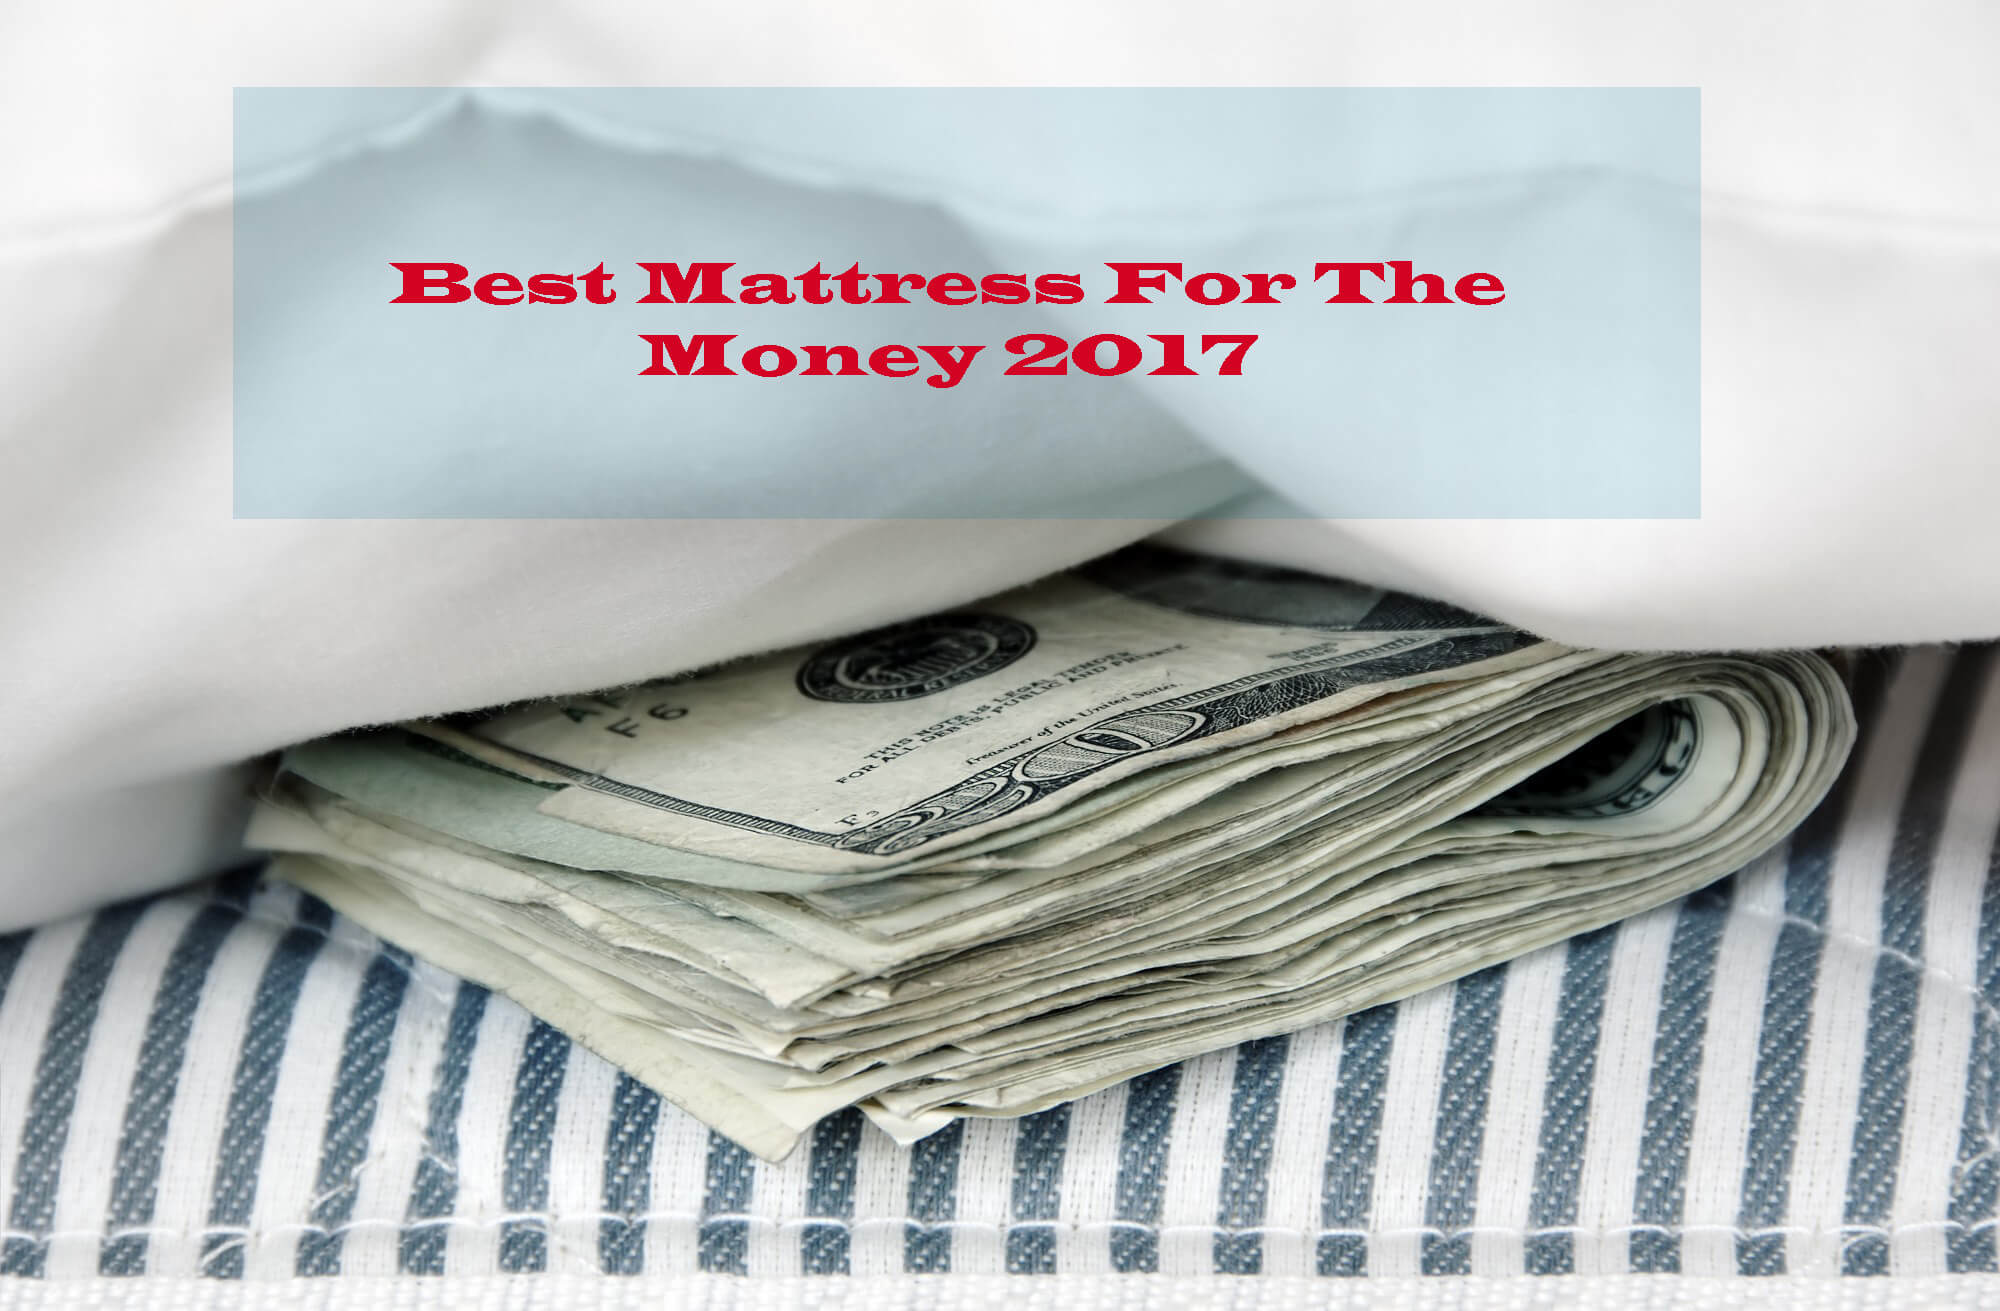 best mattress for the money of best mattress in 2018 community counts. Black Bedroom Furniture Sets. Home Design Ideas